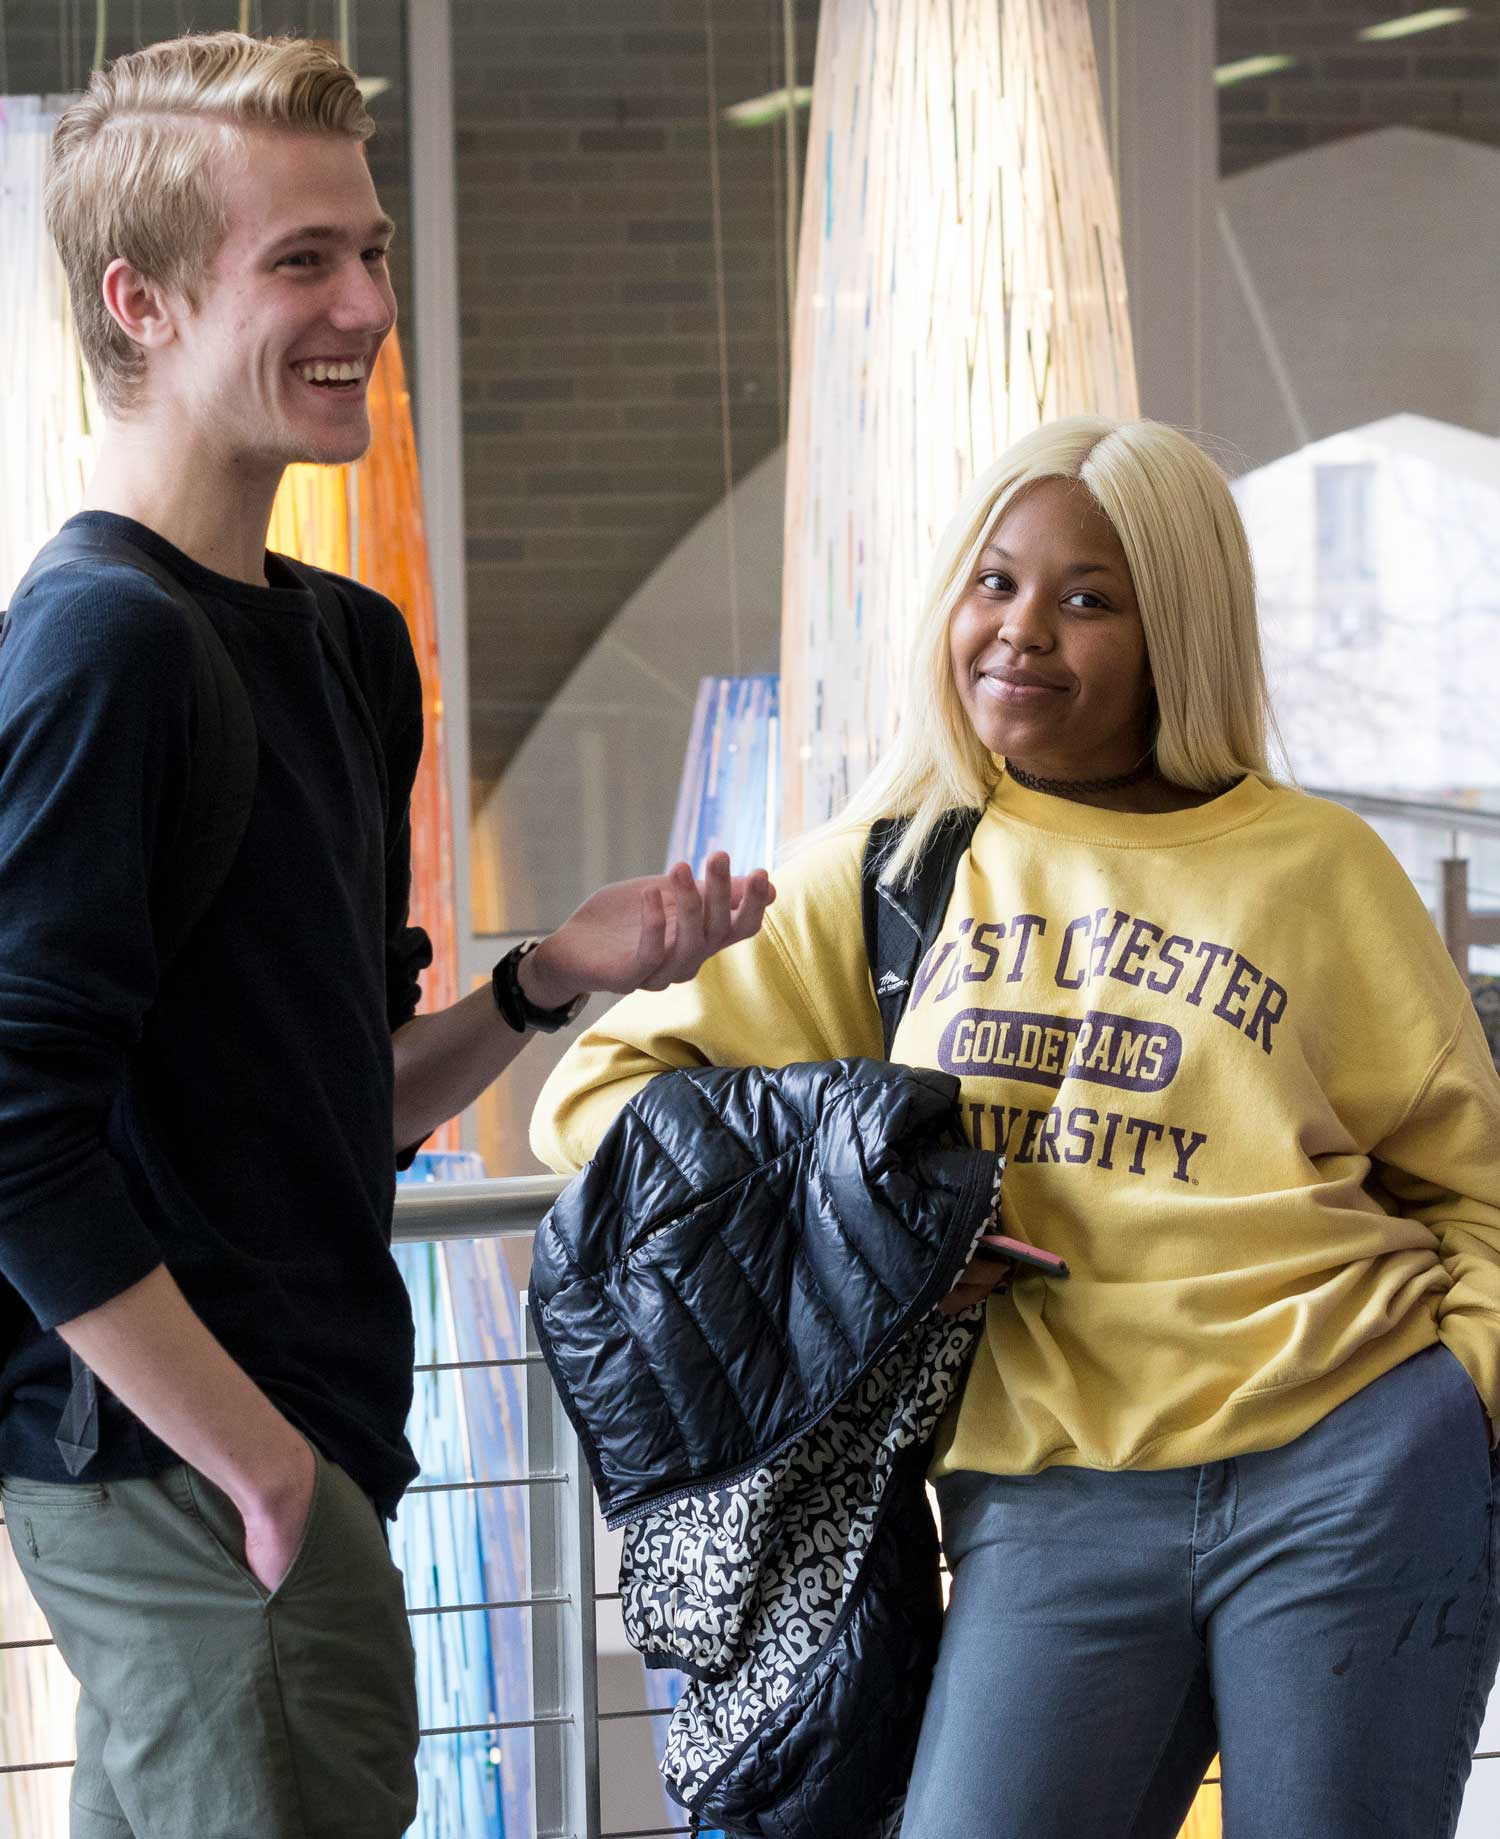 WCU's Charter Day of Giving